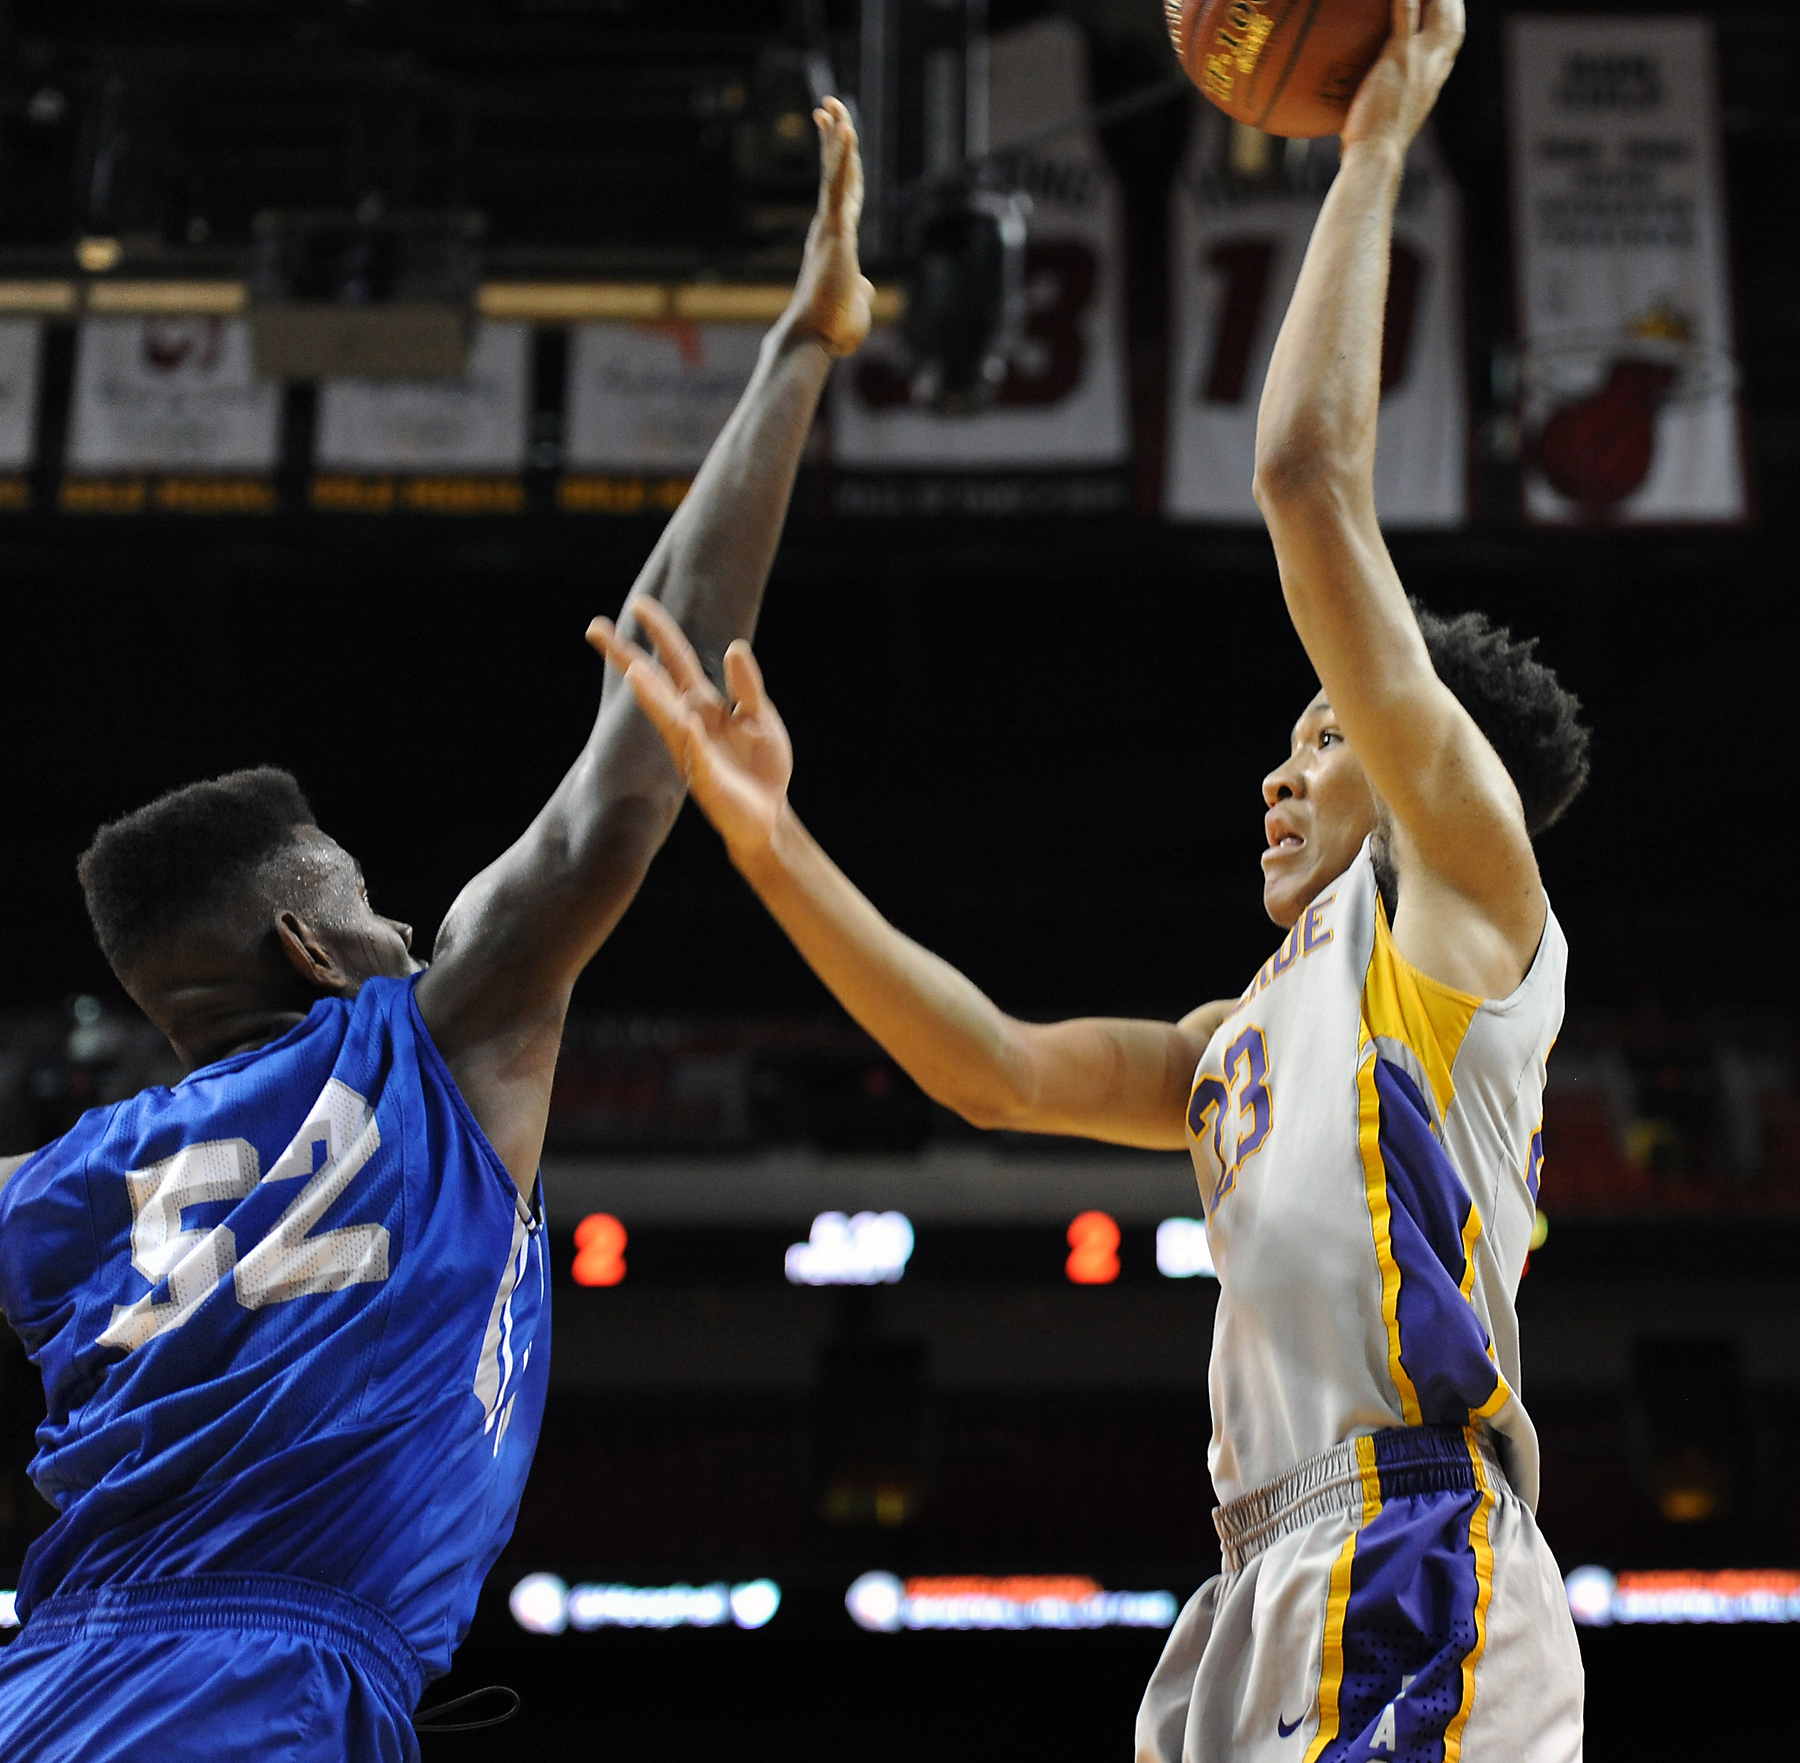 Montverde Academy forward EJ Montgomery takes a shot over Dillard's Joniya Gadson (Photo: Robert Duyos, USA TODAY Sports Images)